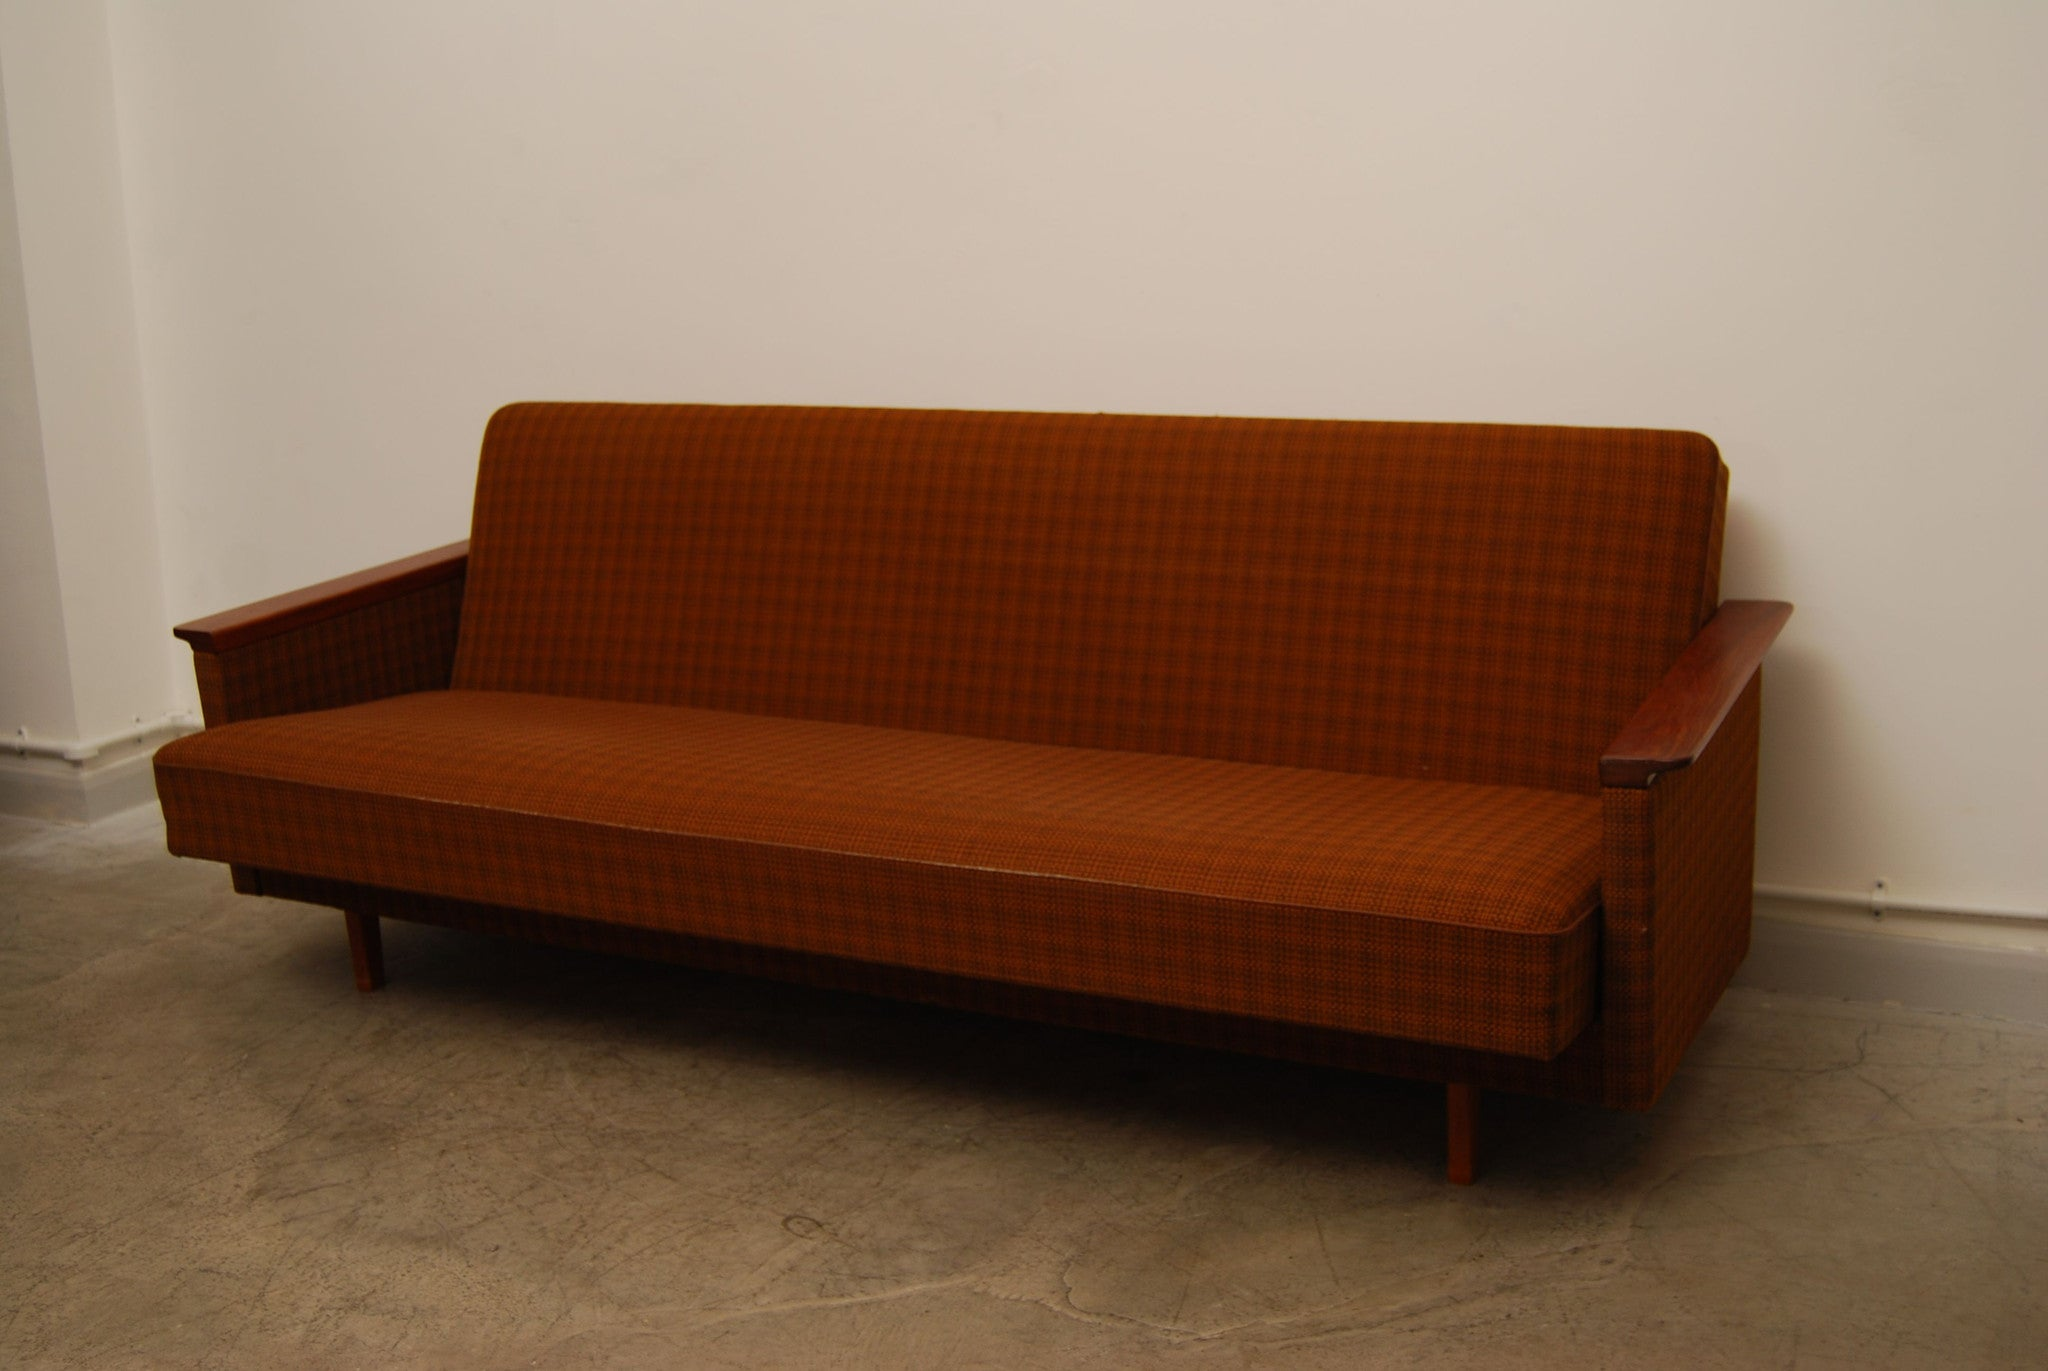 Sofabed with teak arms